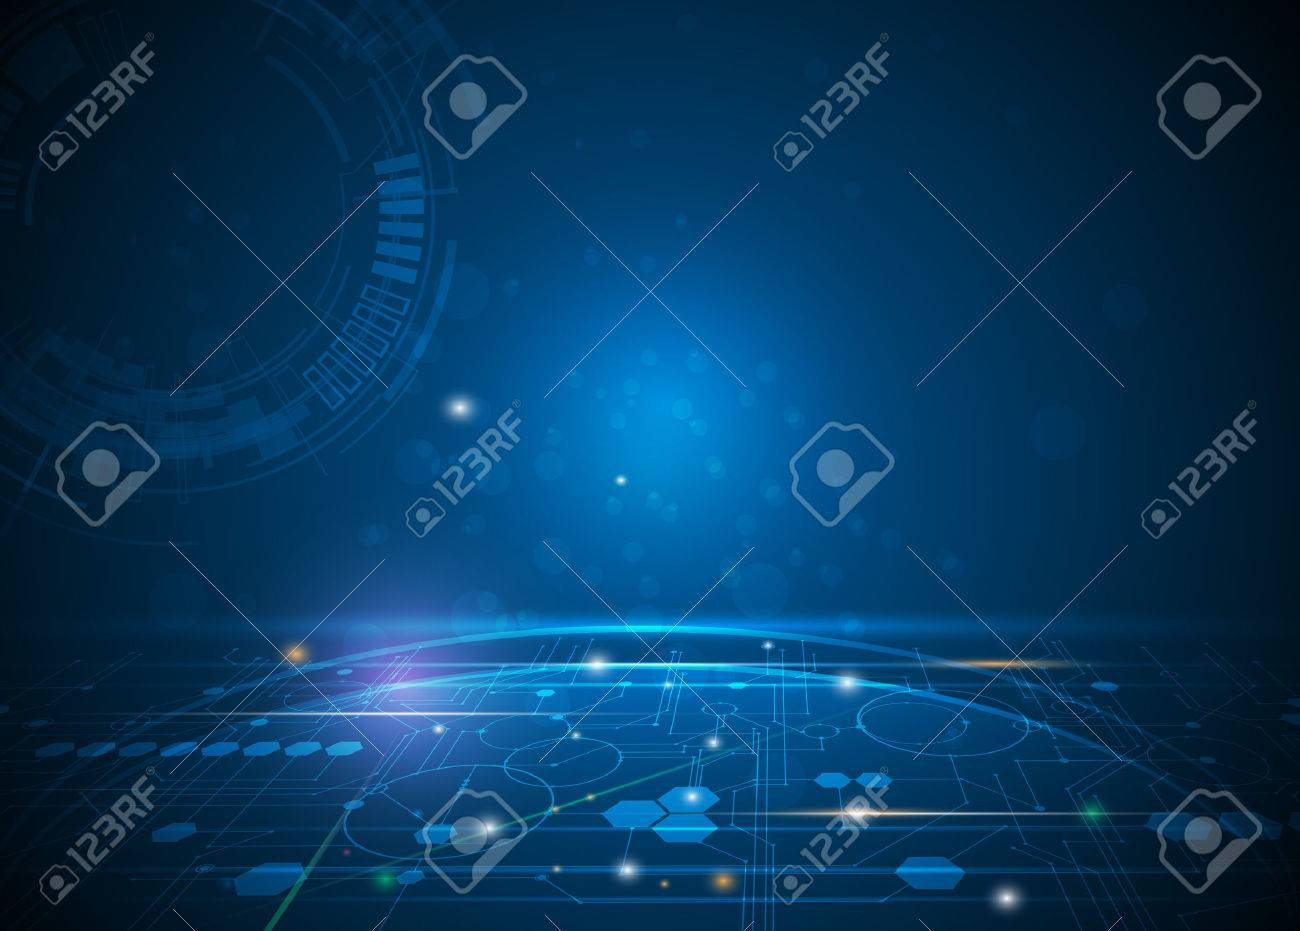 illustration Abstract futuristic hexagons and circuit board, high computer technology, innovation communication concept. Dark blue color background - 55496334